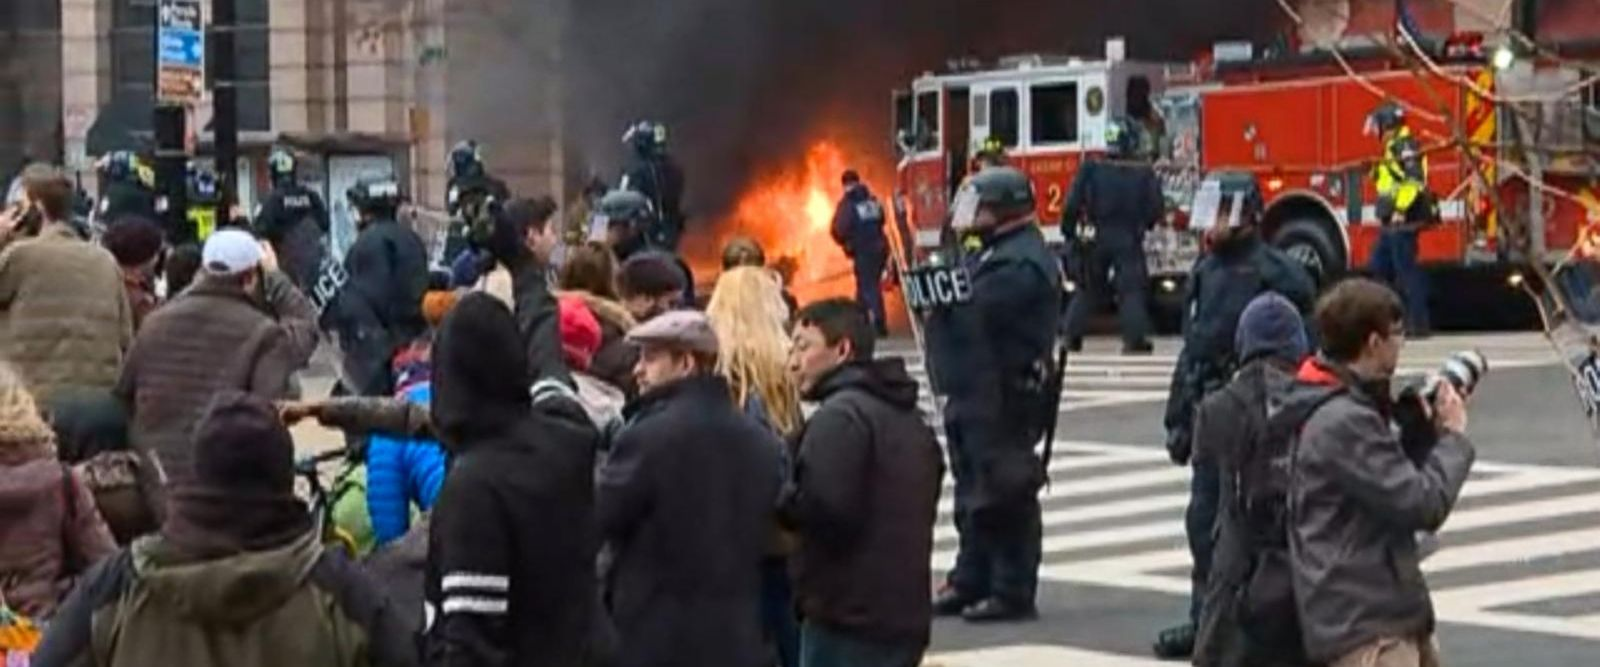 VIDEO: Protesters Gather in Washington D.C. After Inauguration Ceremony